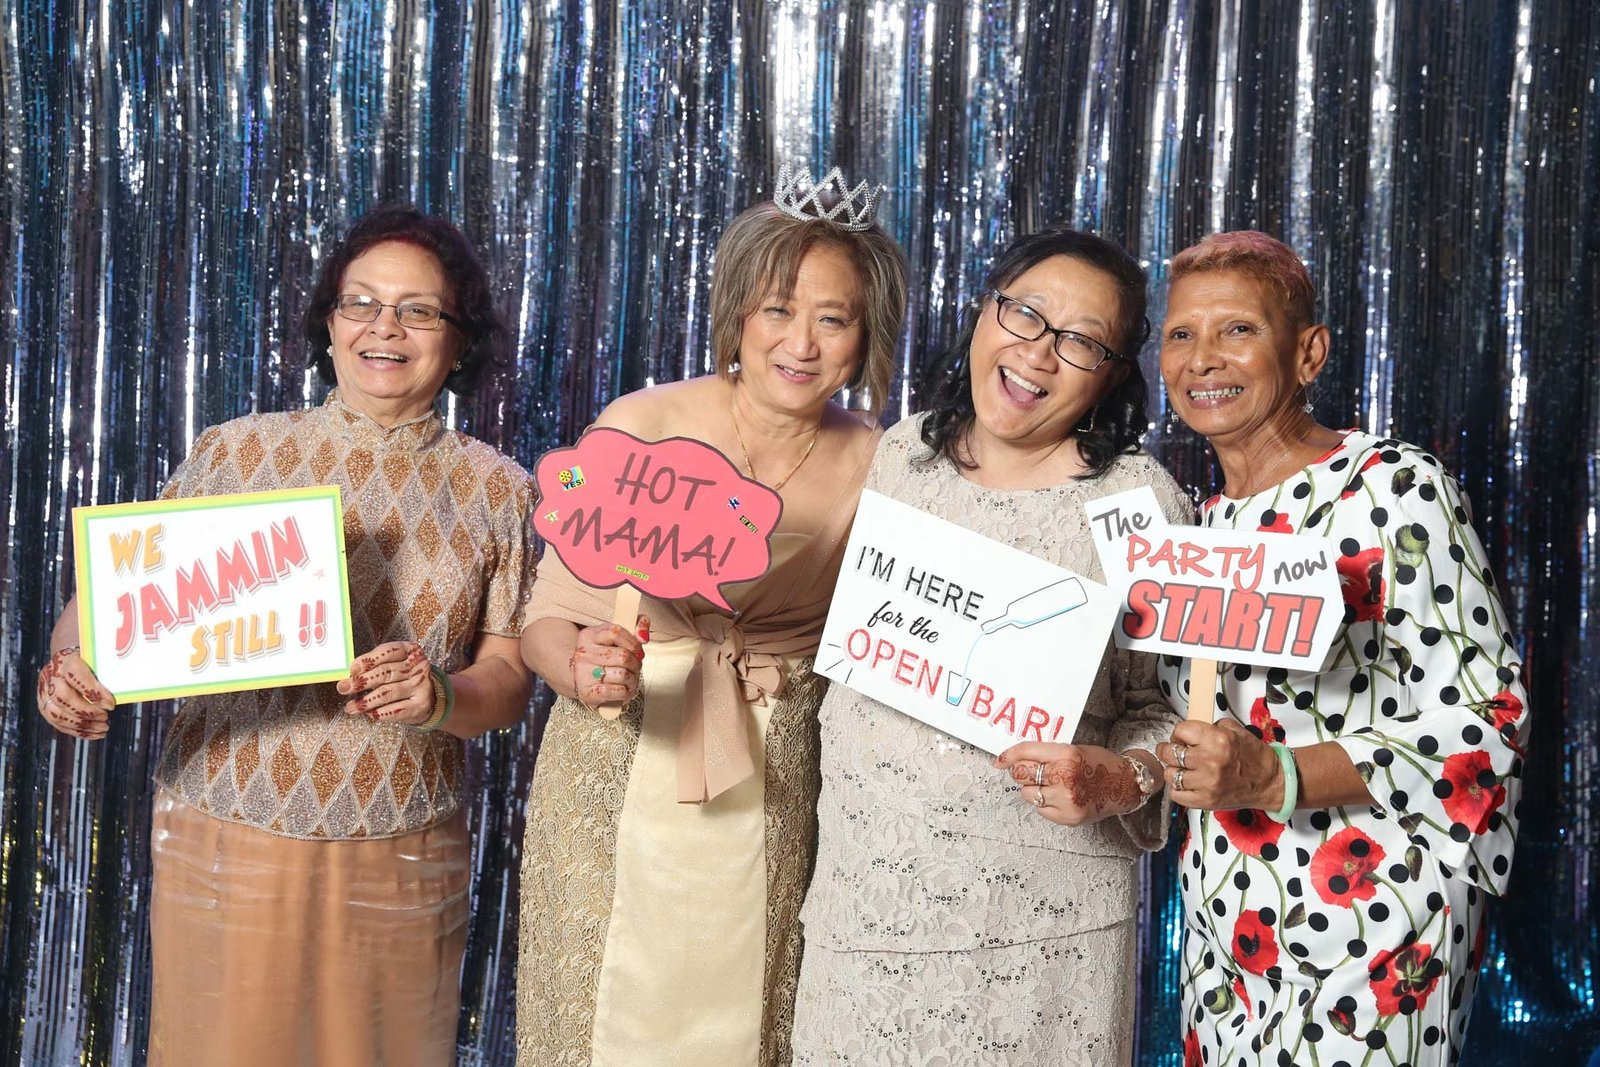 Older ladies holding up funny signs at photobooth. Photo by Ross Photography, Trinidad, W.I..